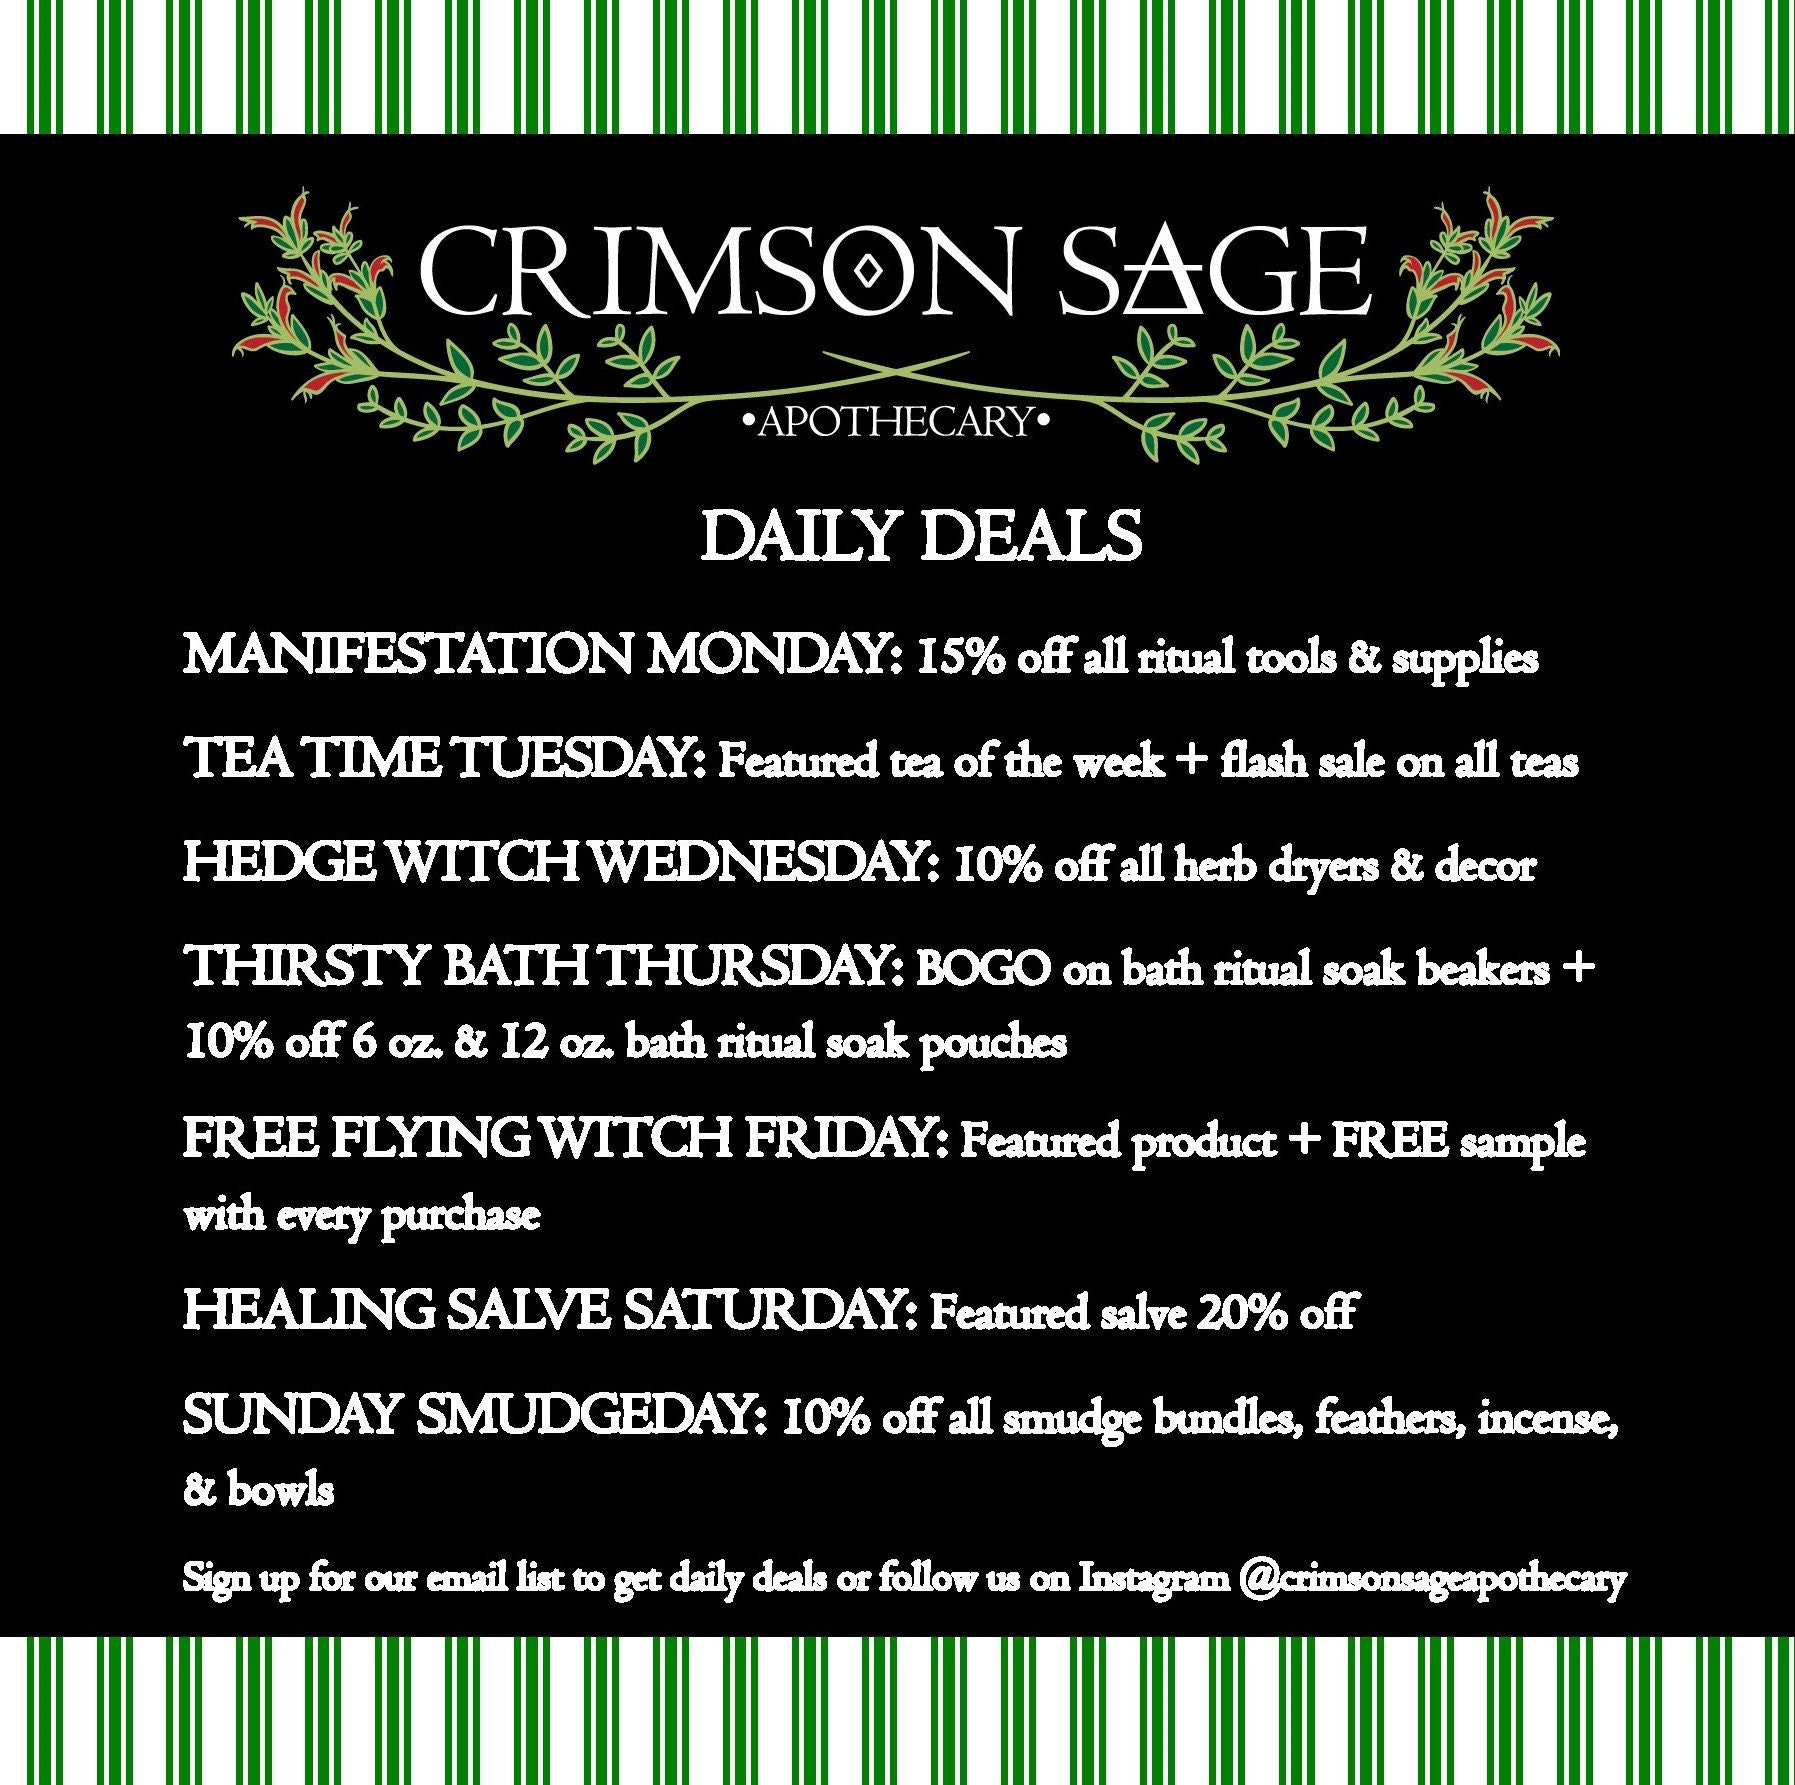 Subscribe to our coven for daily deals & coupons! https://mailchi.mp/6d4155bf10c1/crimsonsageemail